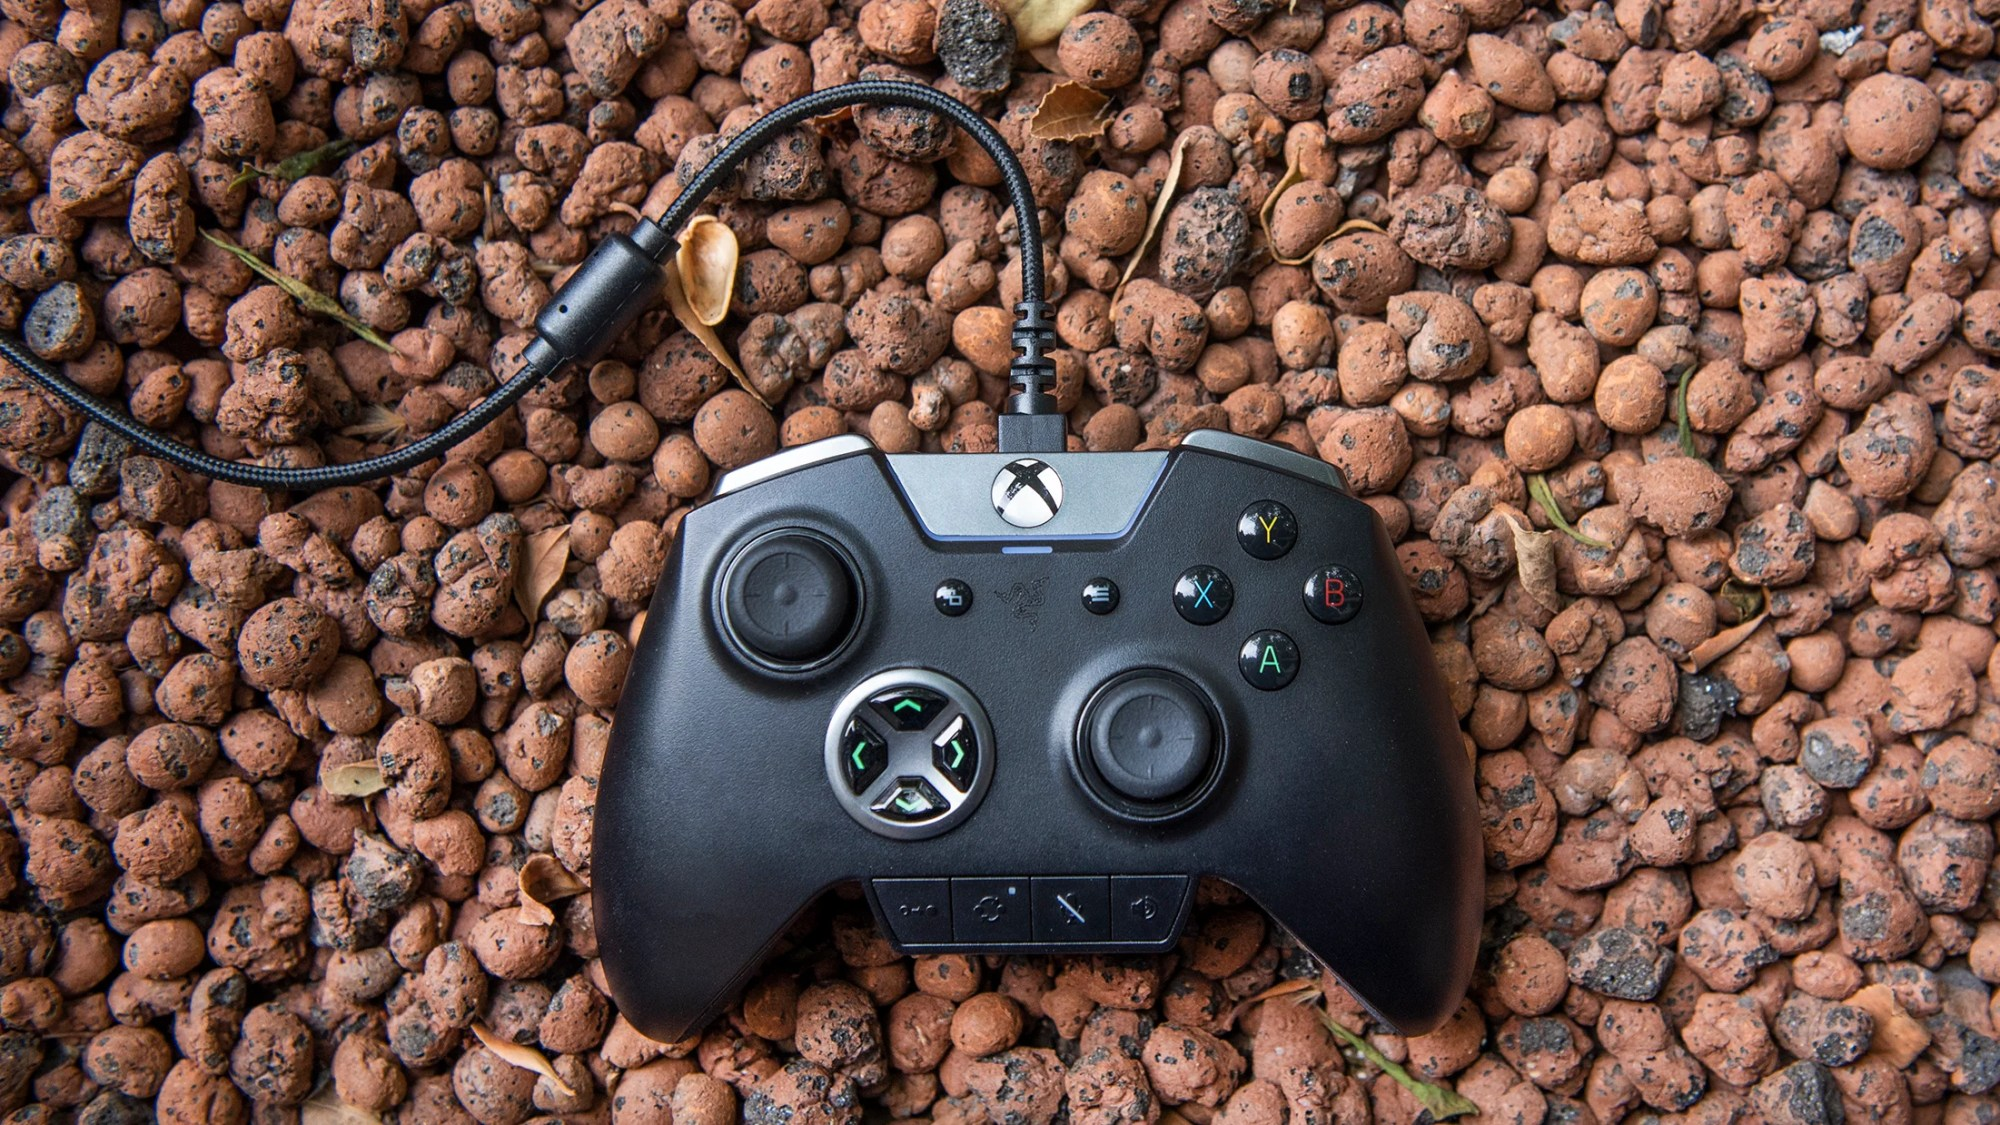 hight resolution of razer s latest xbox controller the wolverine ultimate might not be as appealing as the wildcat which is now out getting rather old but it s still a